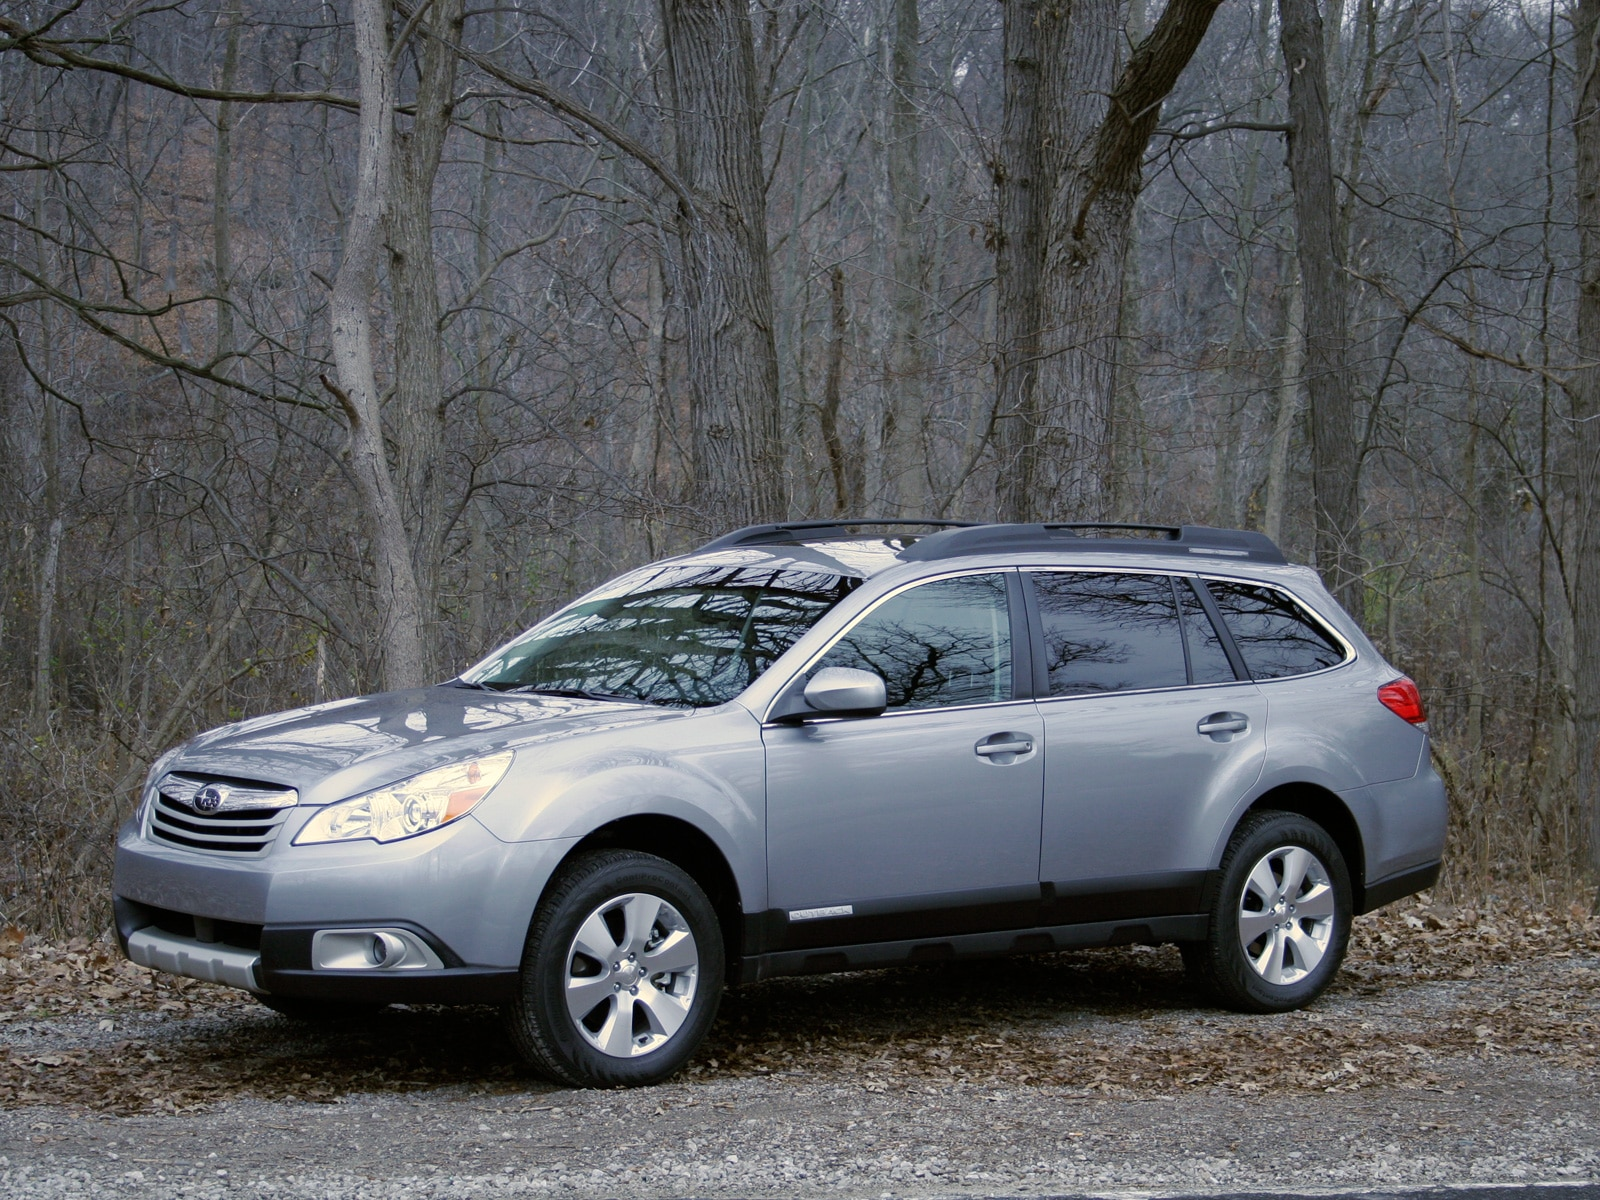 2010 subaru outback 3 6r limited four seasons intro review automobile magazine. Black Bedroom Furniture Sets. Home Design Ideas